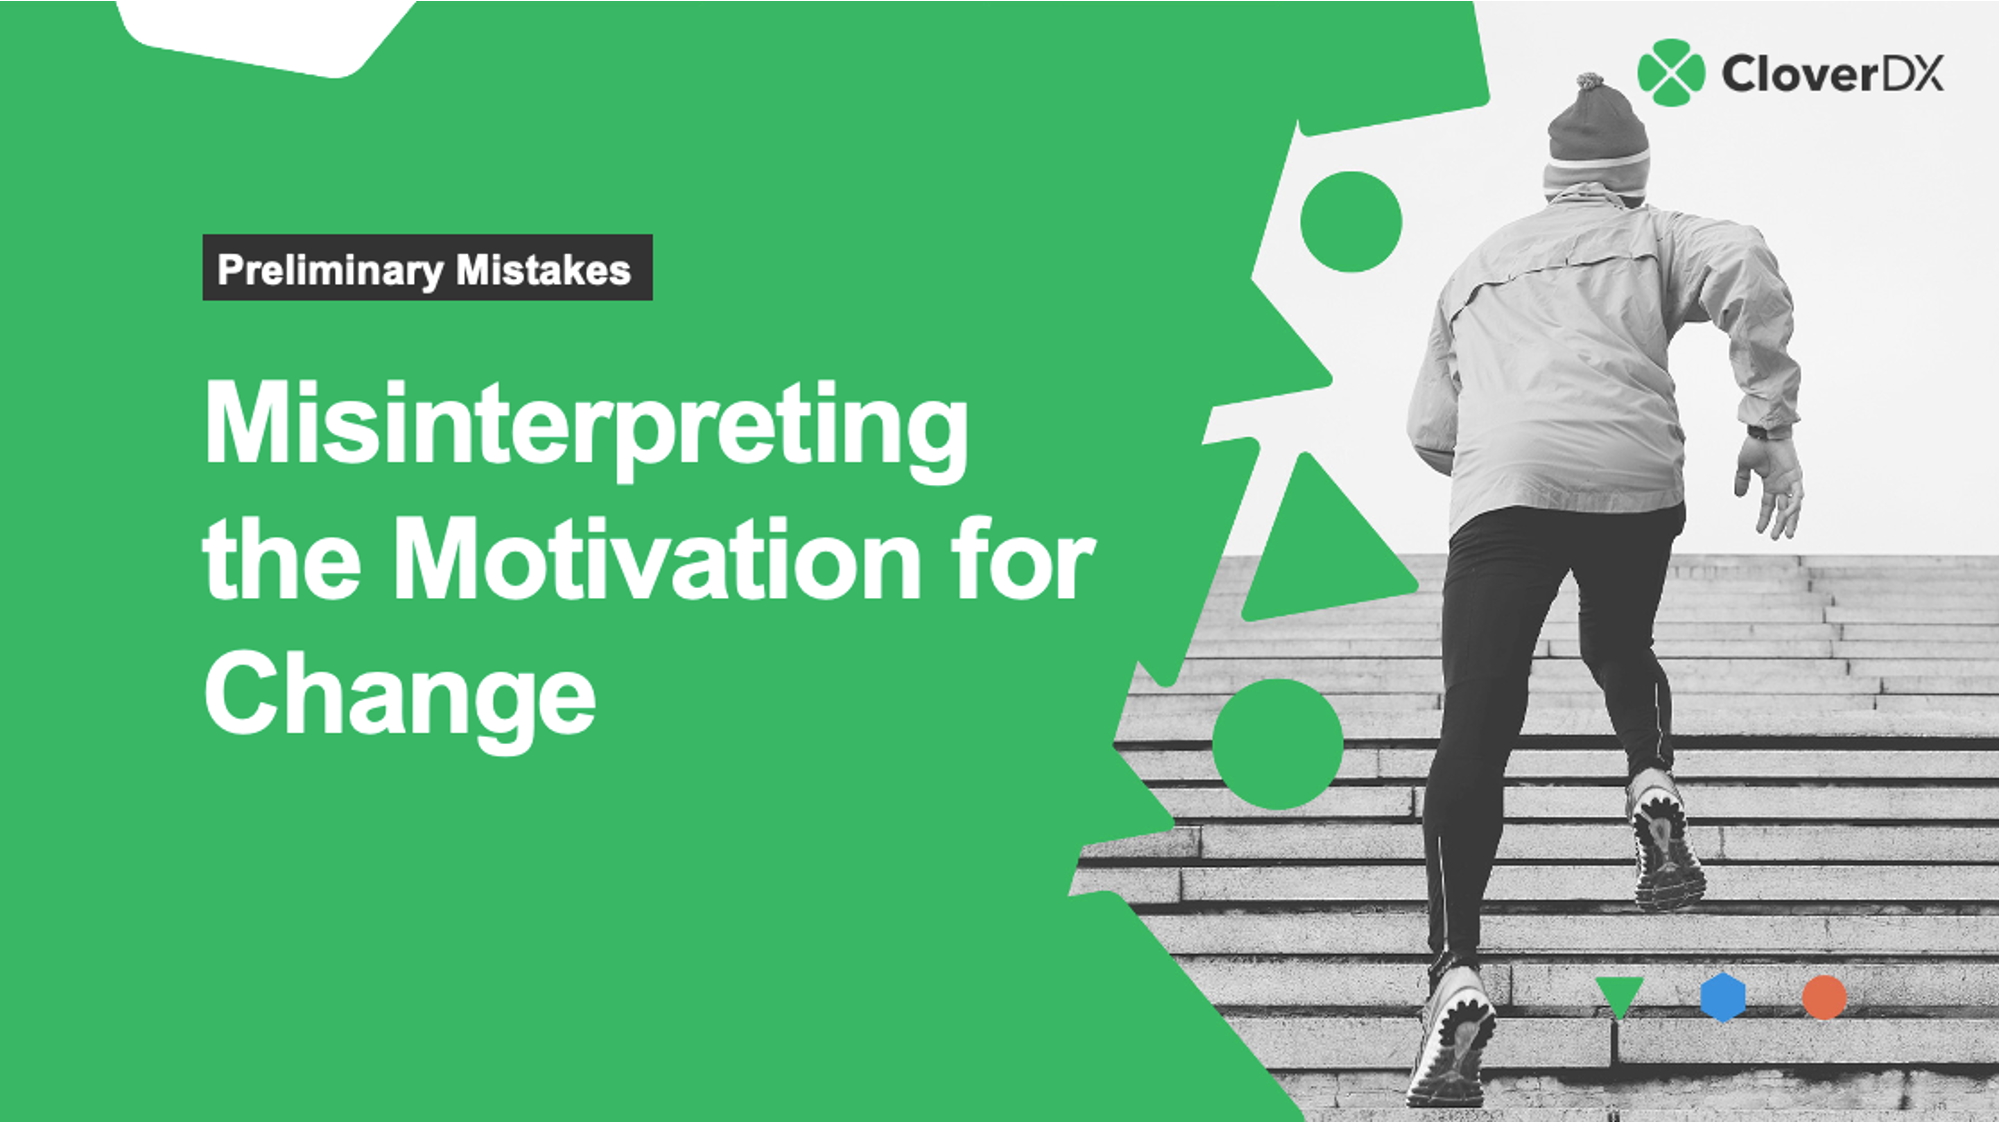 misinterpreting motivation for change